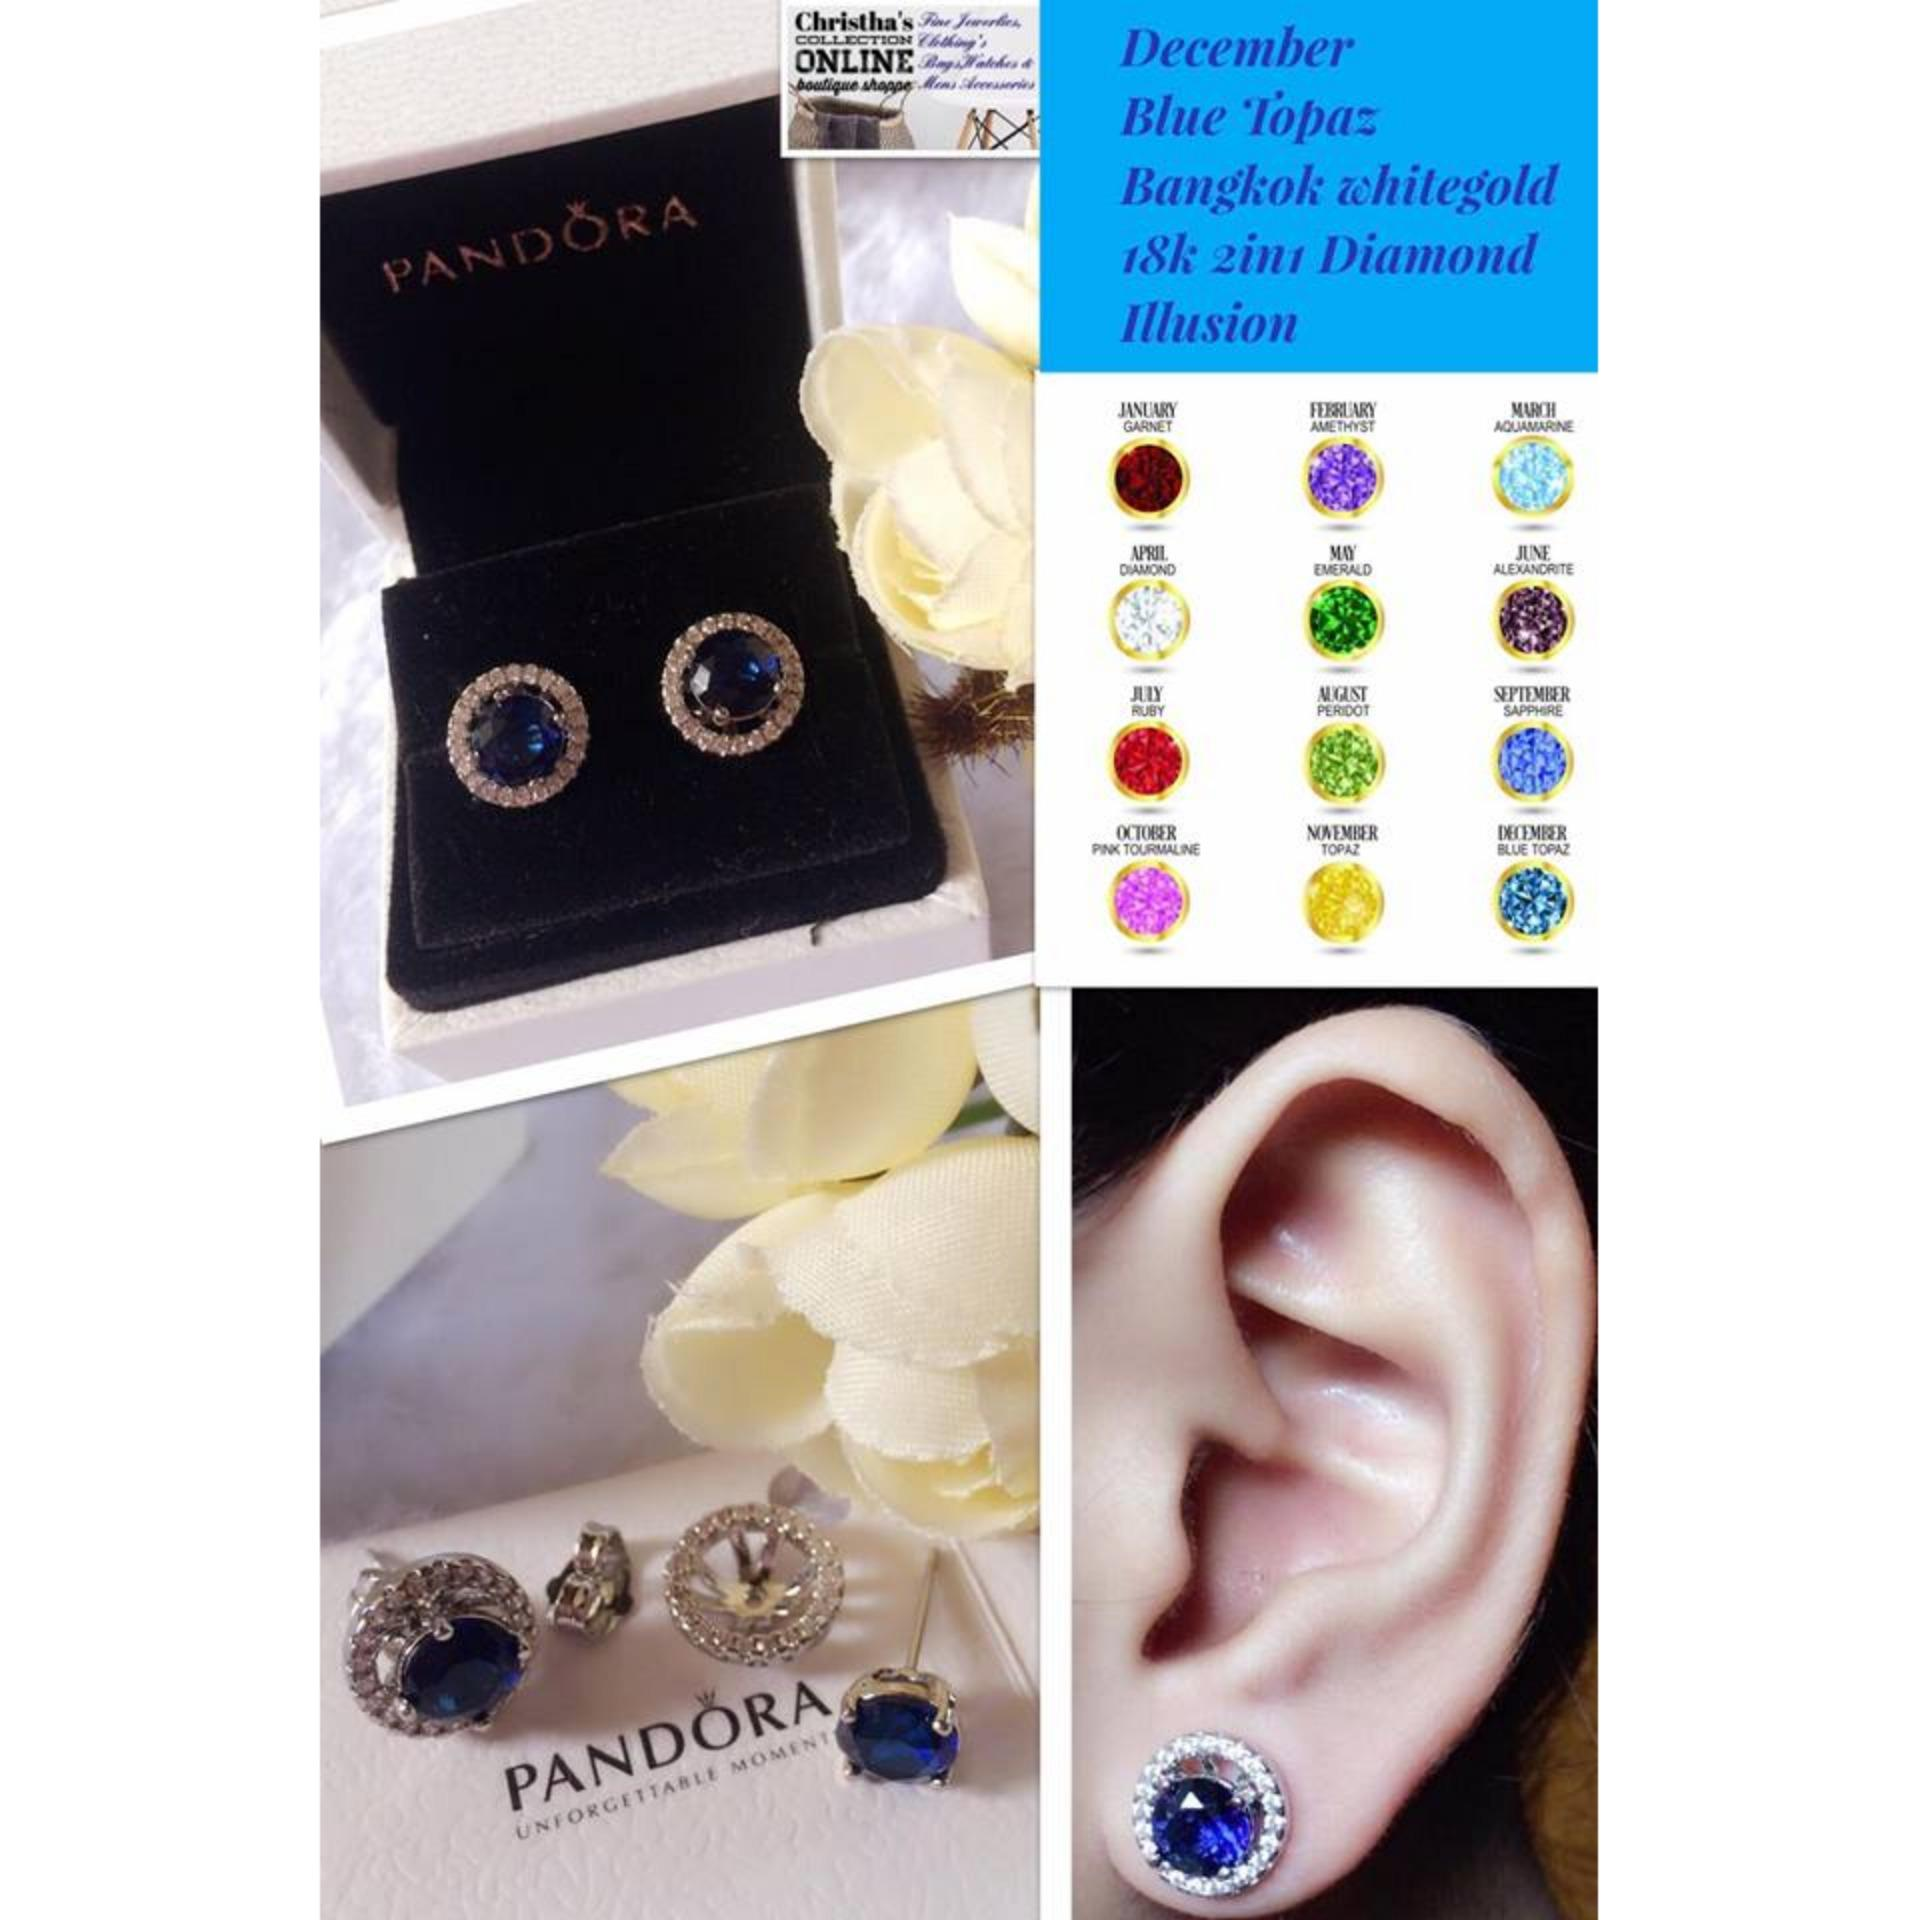 jones philip earrings birthstone